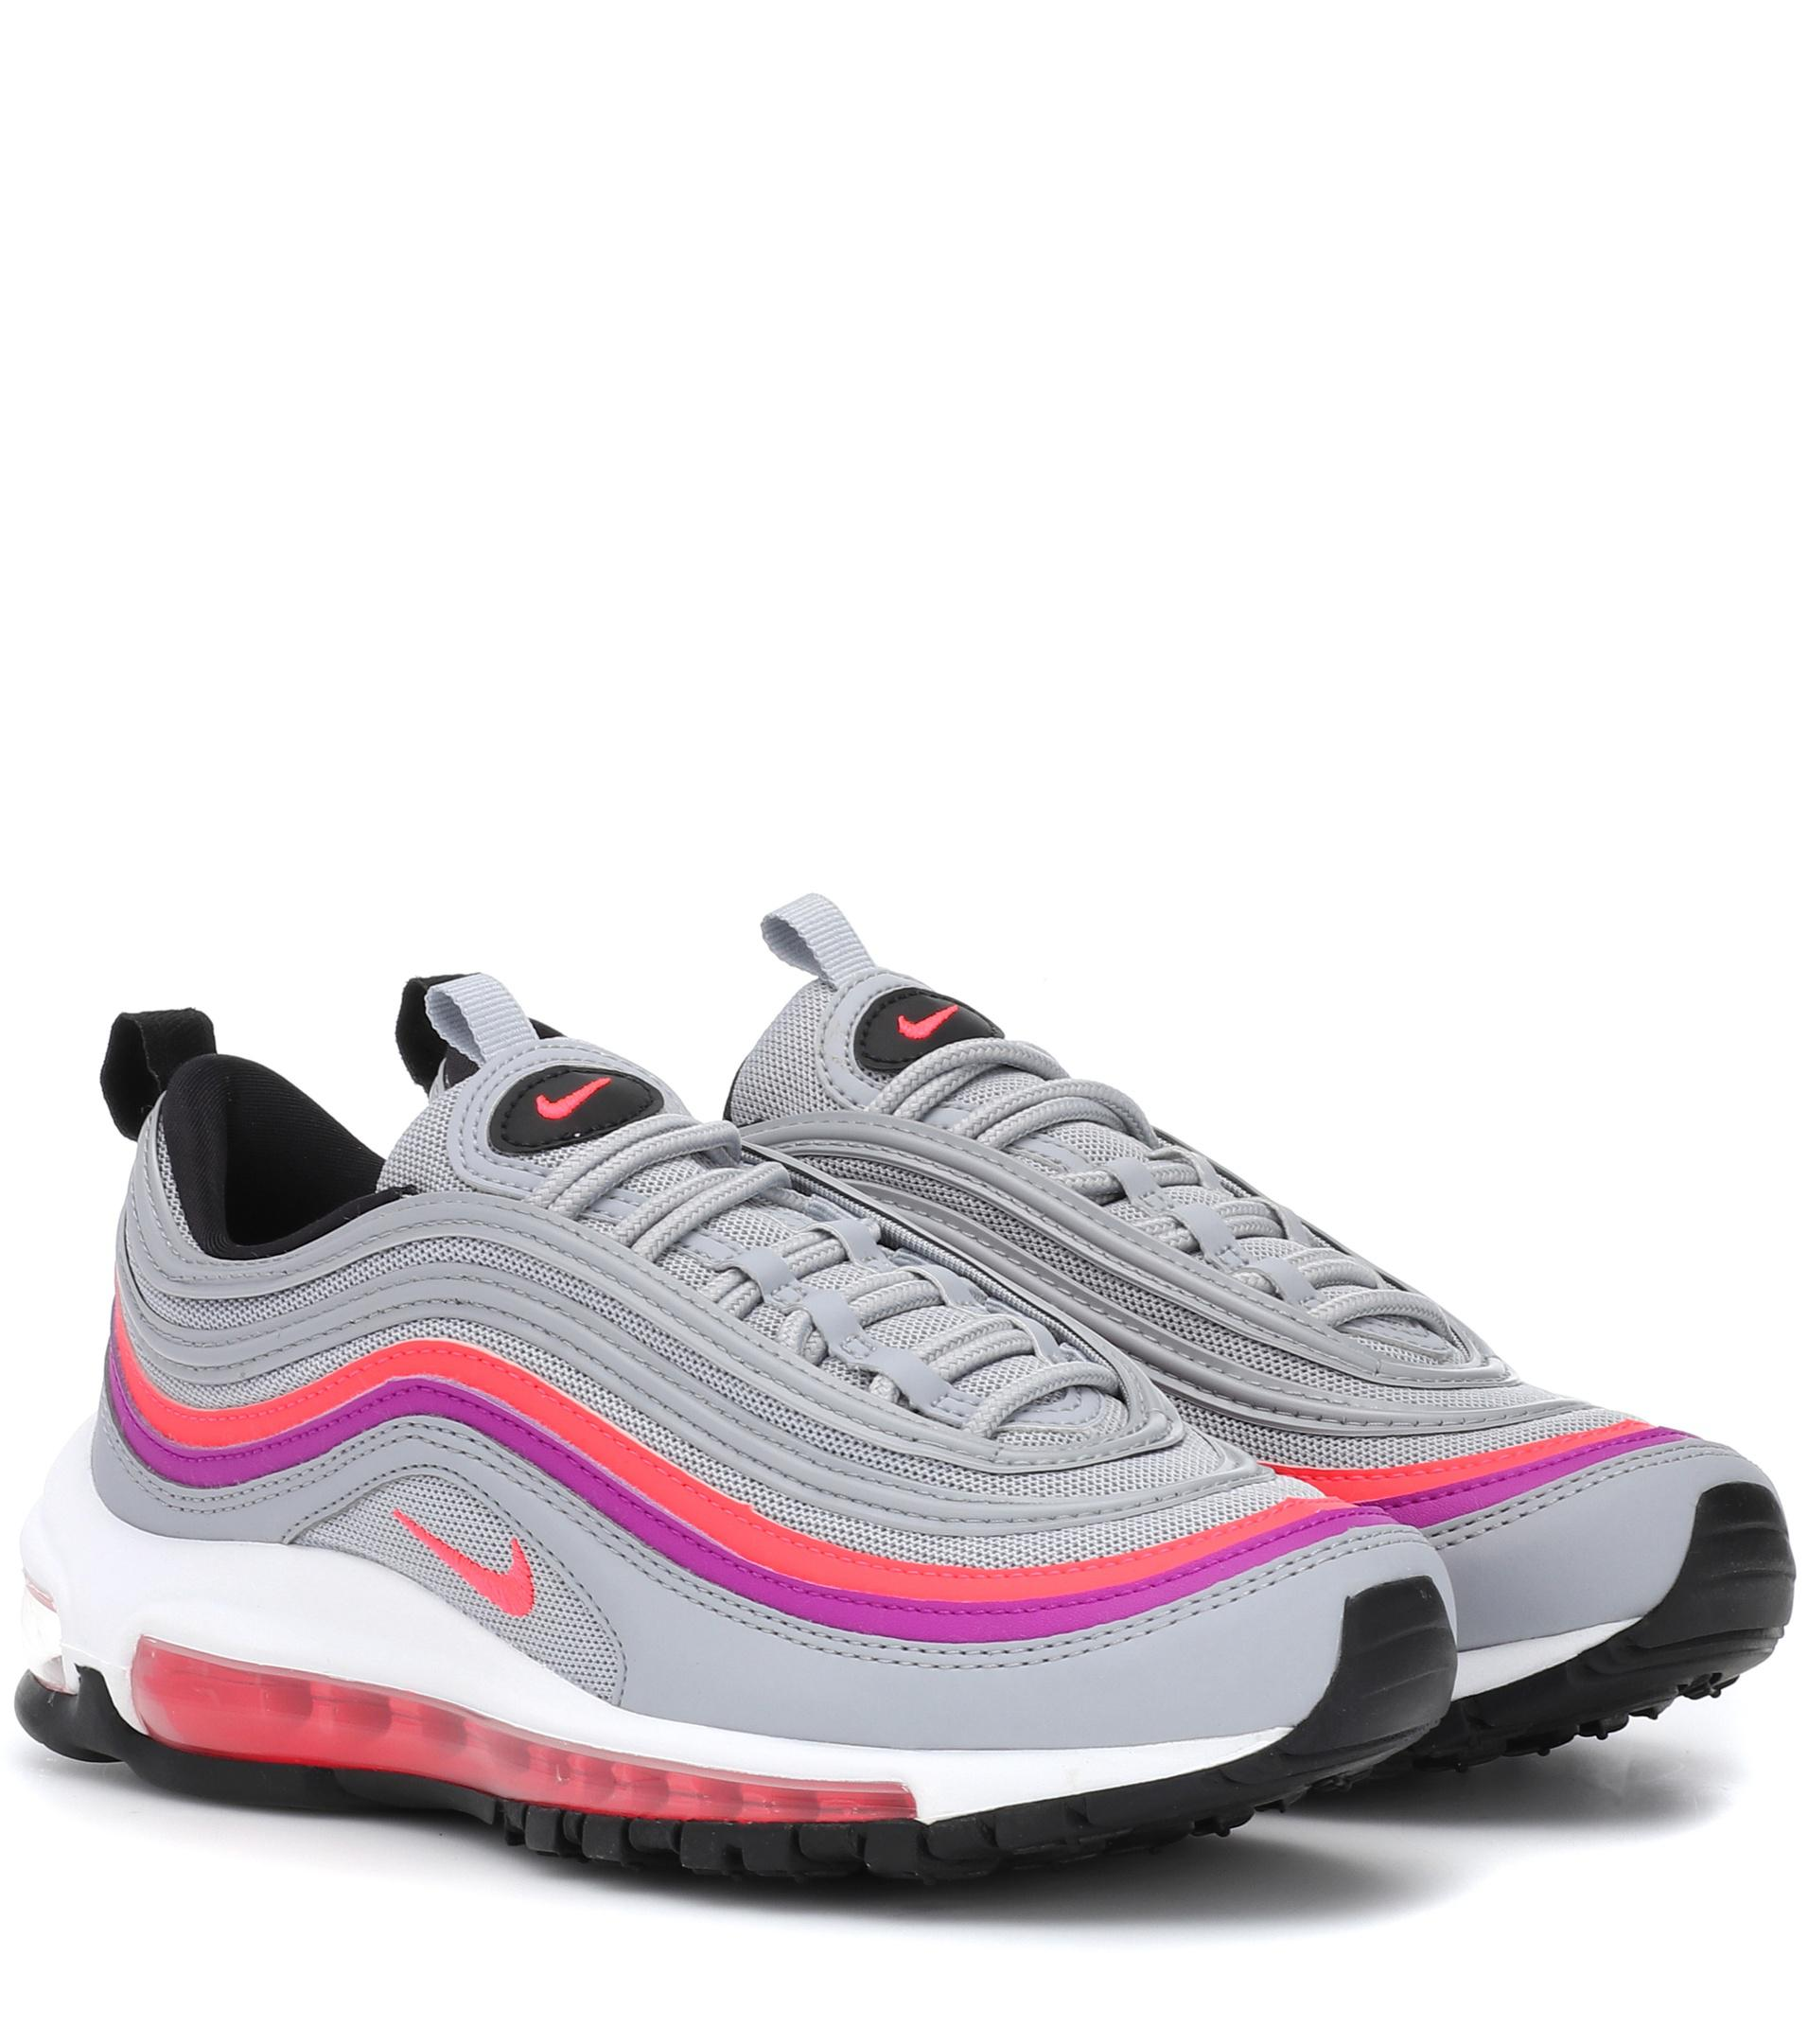 low priced a6f7b cdd50 ... low cost nike air max in 97 leather sneakers in max grå lyst d9b03a  84b0d 26541